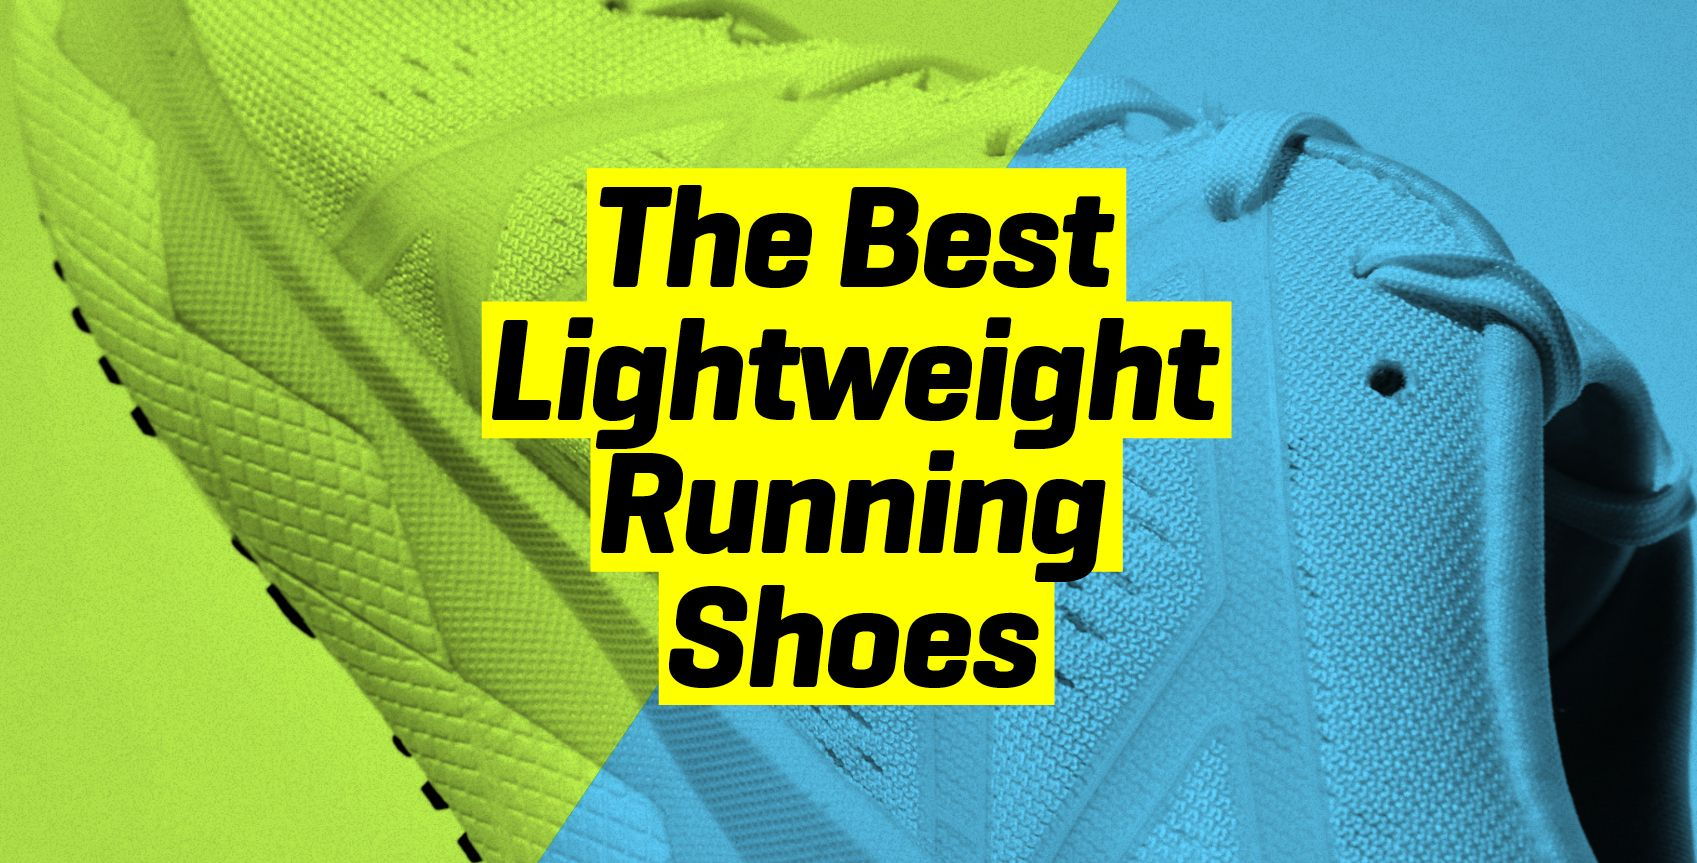 Lightweight Running Shoes | Lightest Shoes for Runners 2019